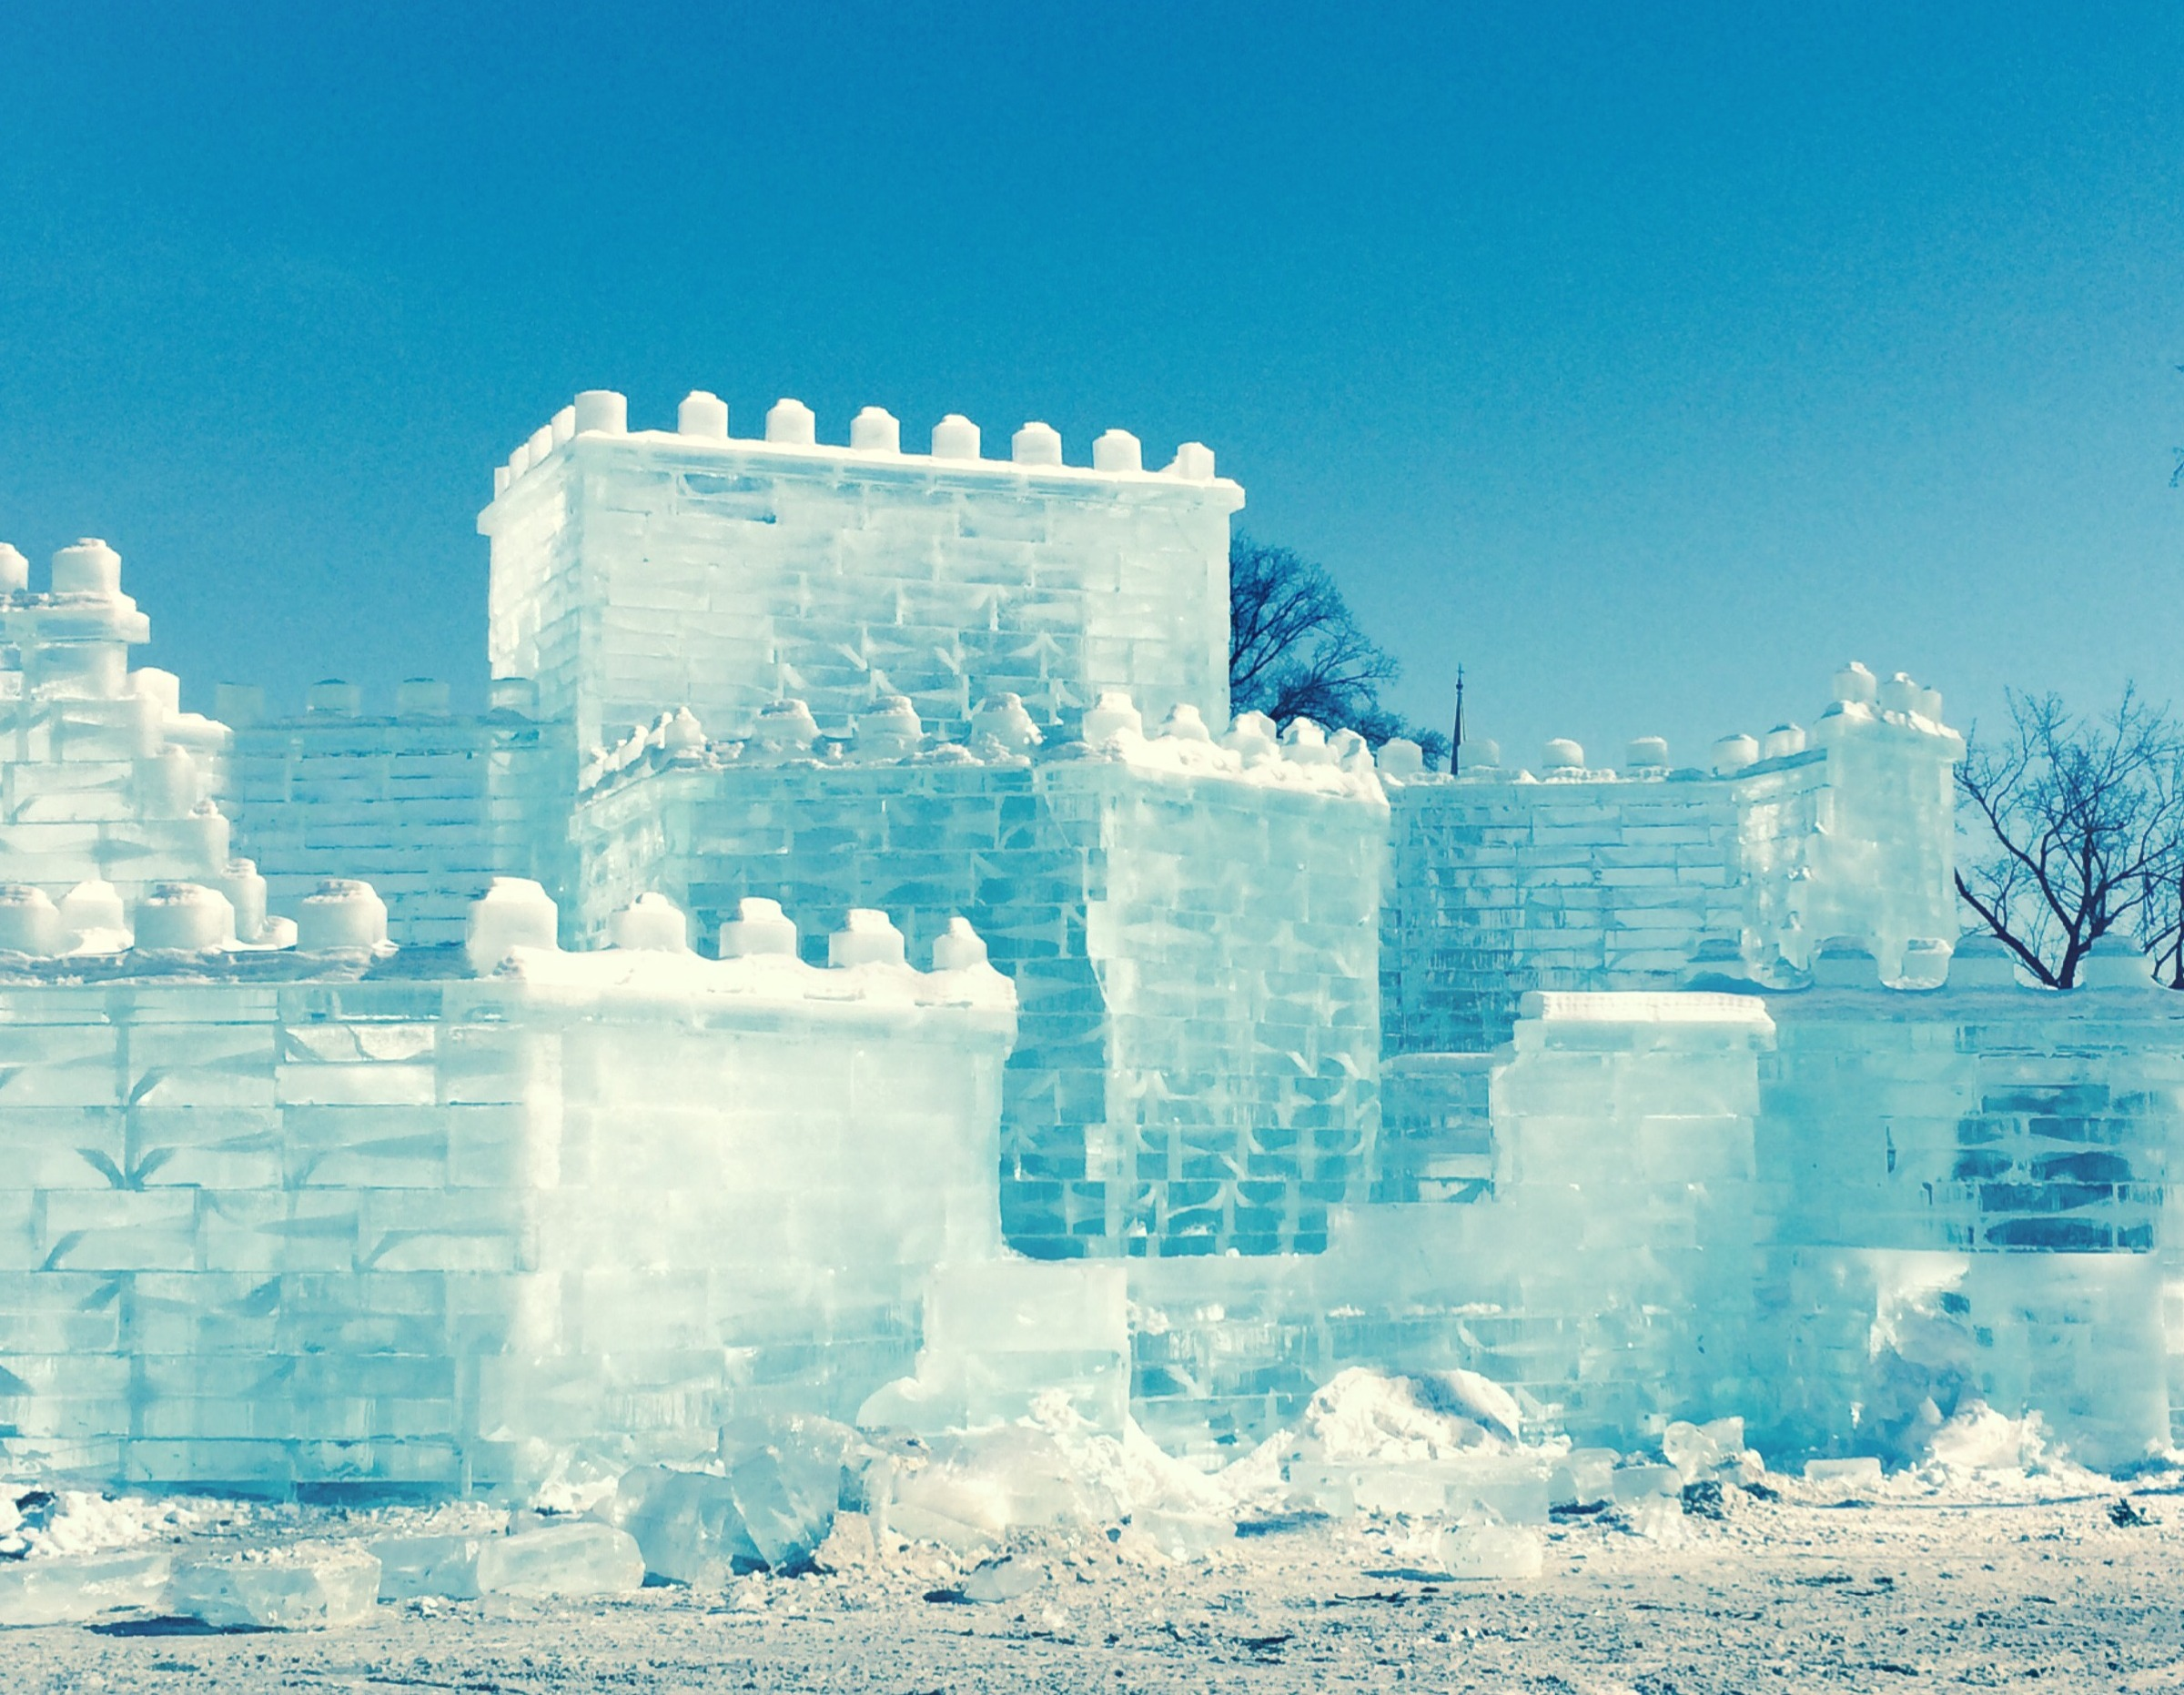 ©Ice Sculpture, Quebec City by Dena T. Bray